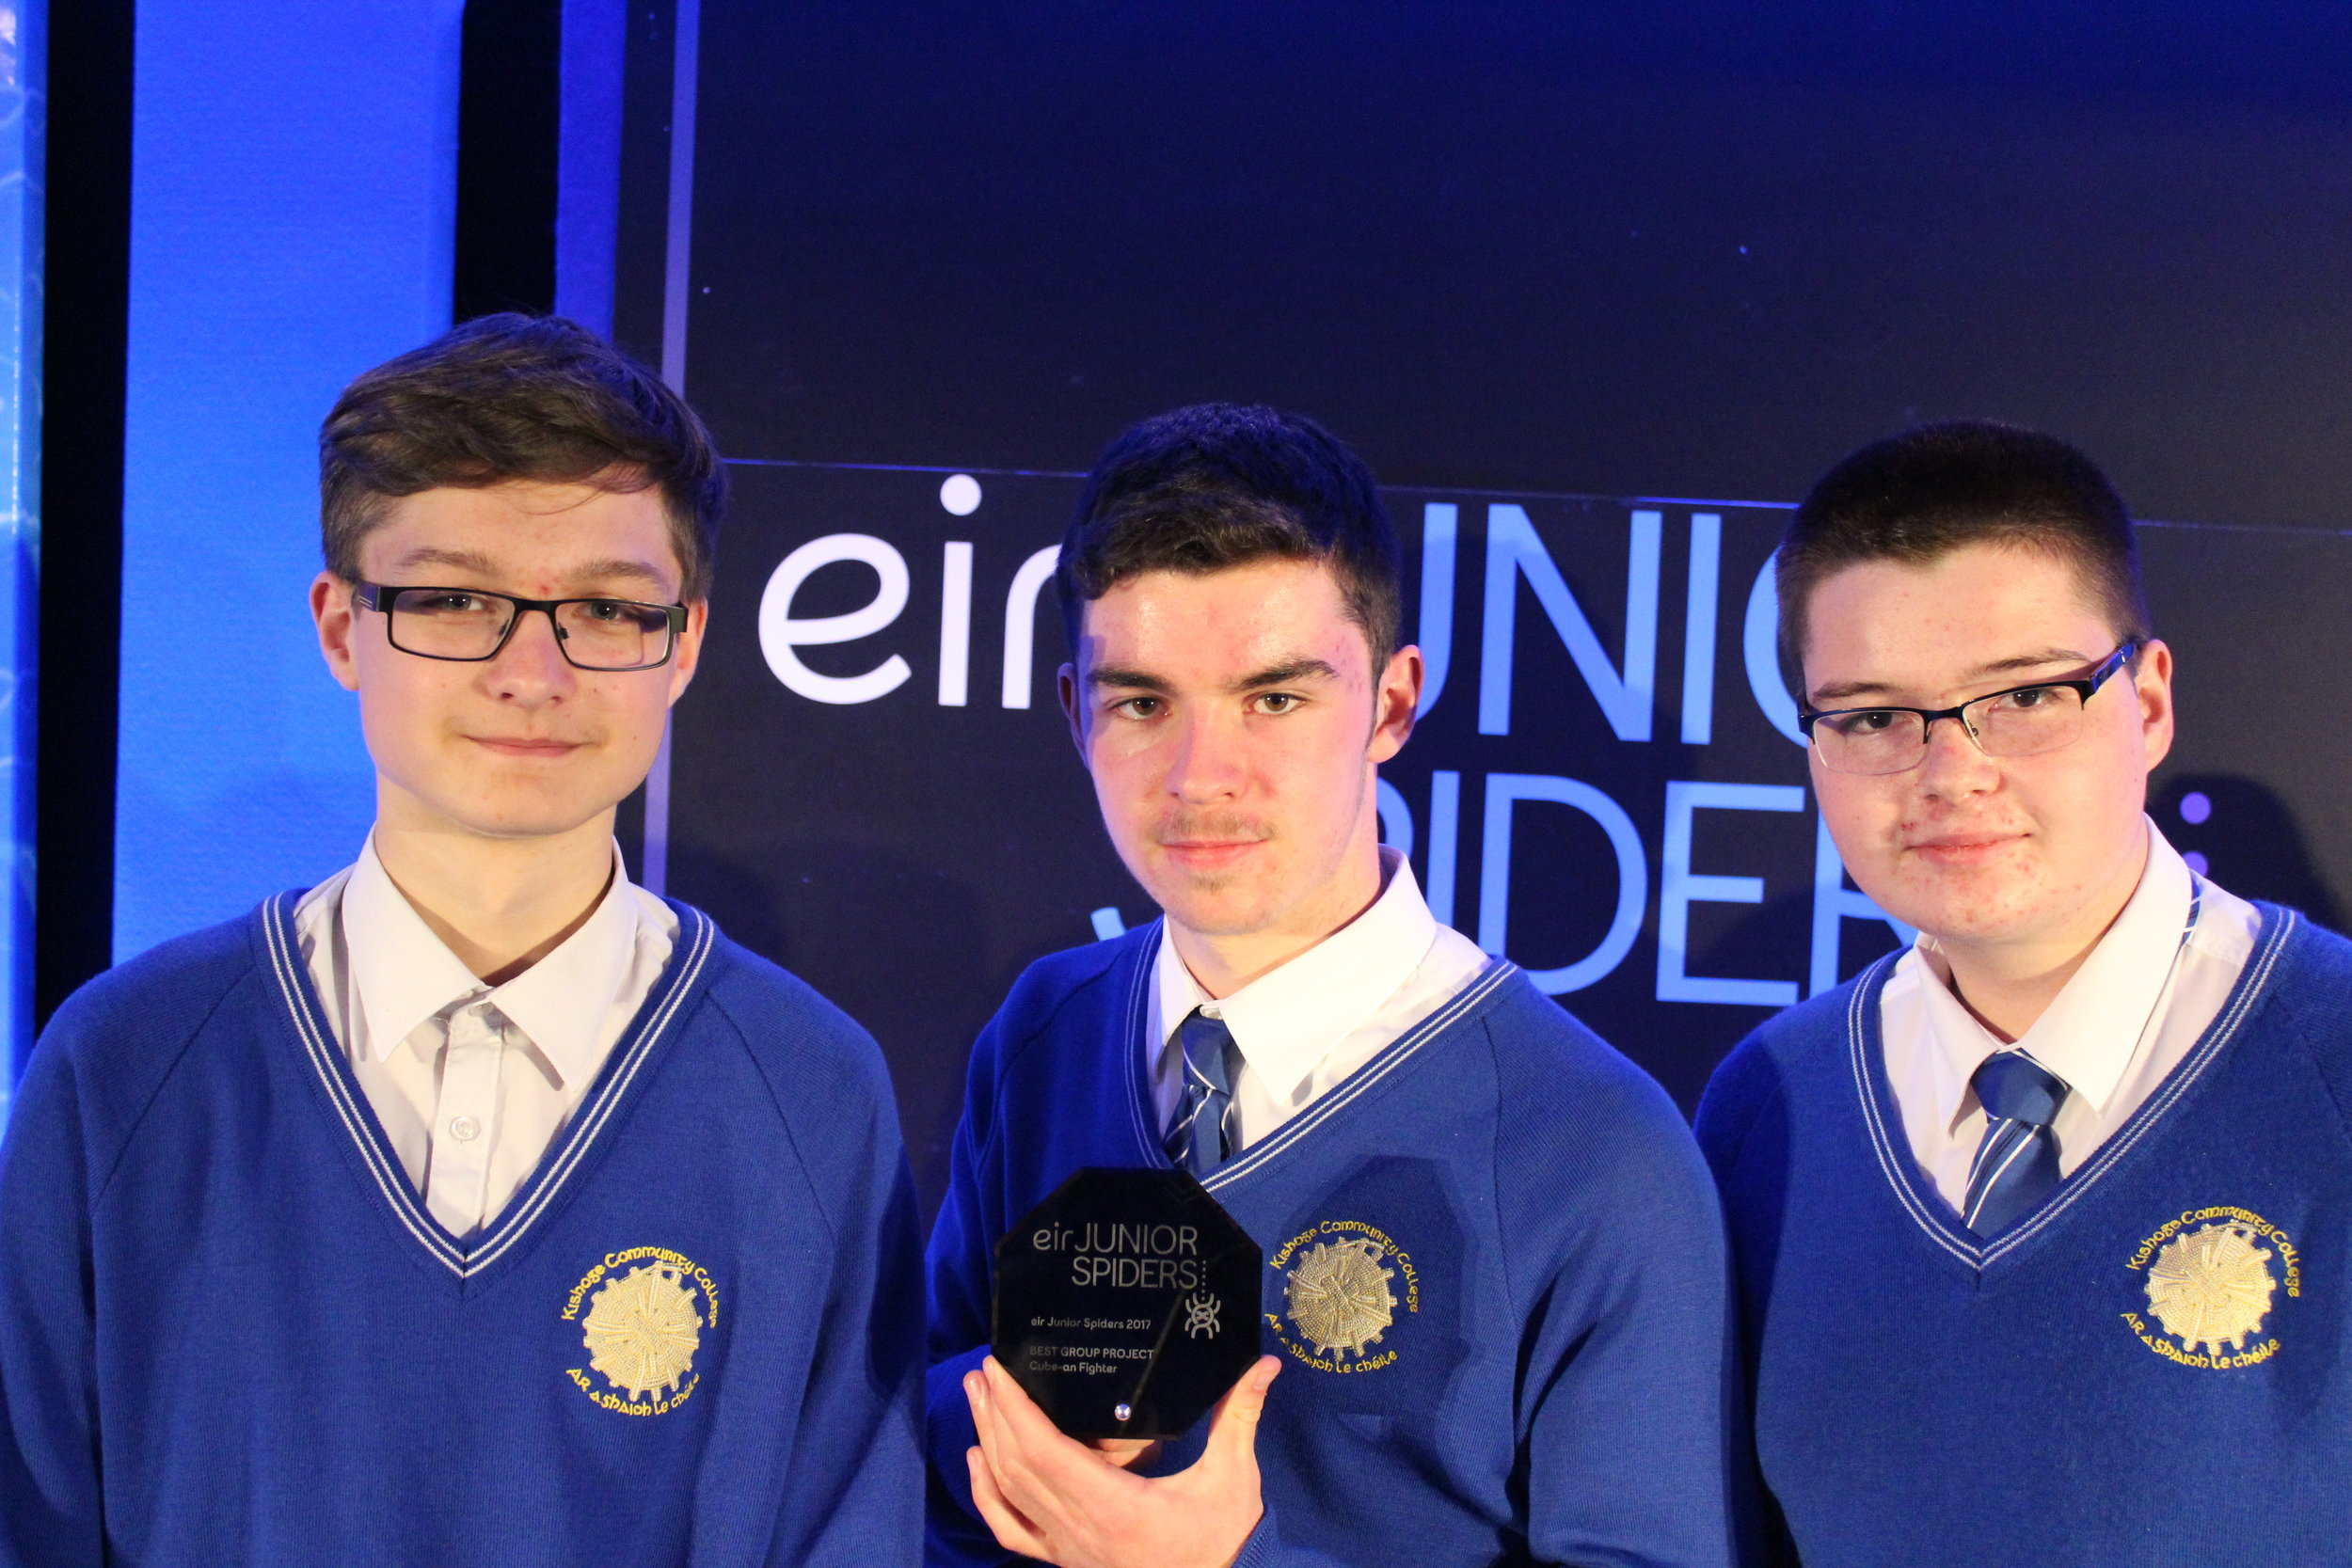 Kishoge students win best group project in Ireland at eir spiders awards